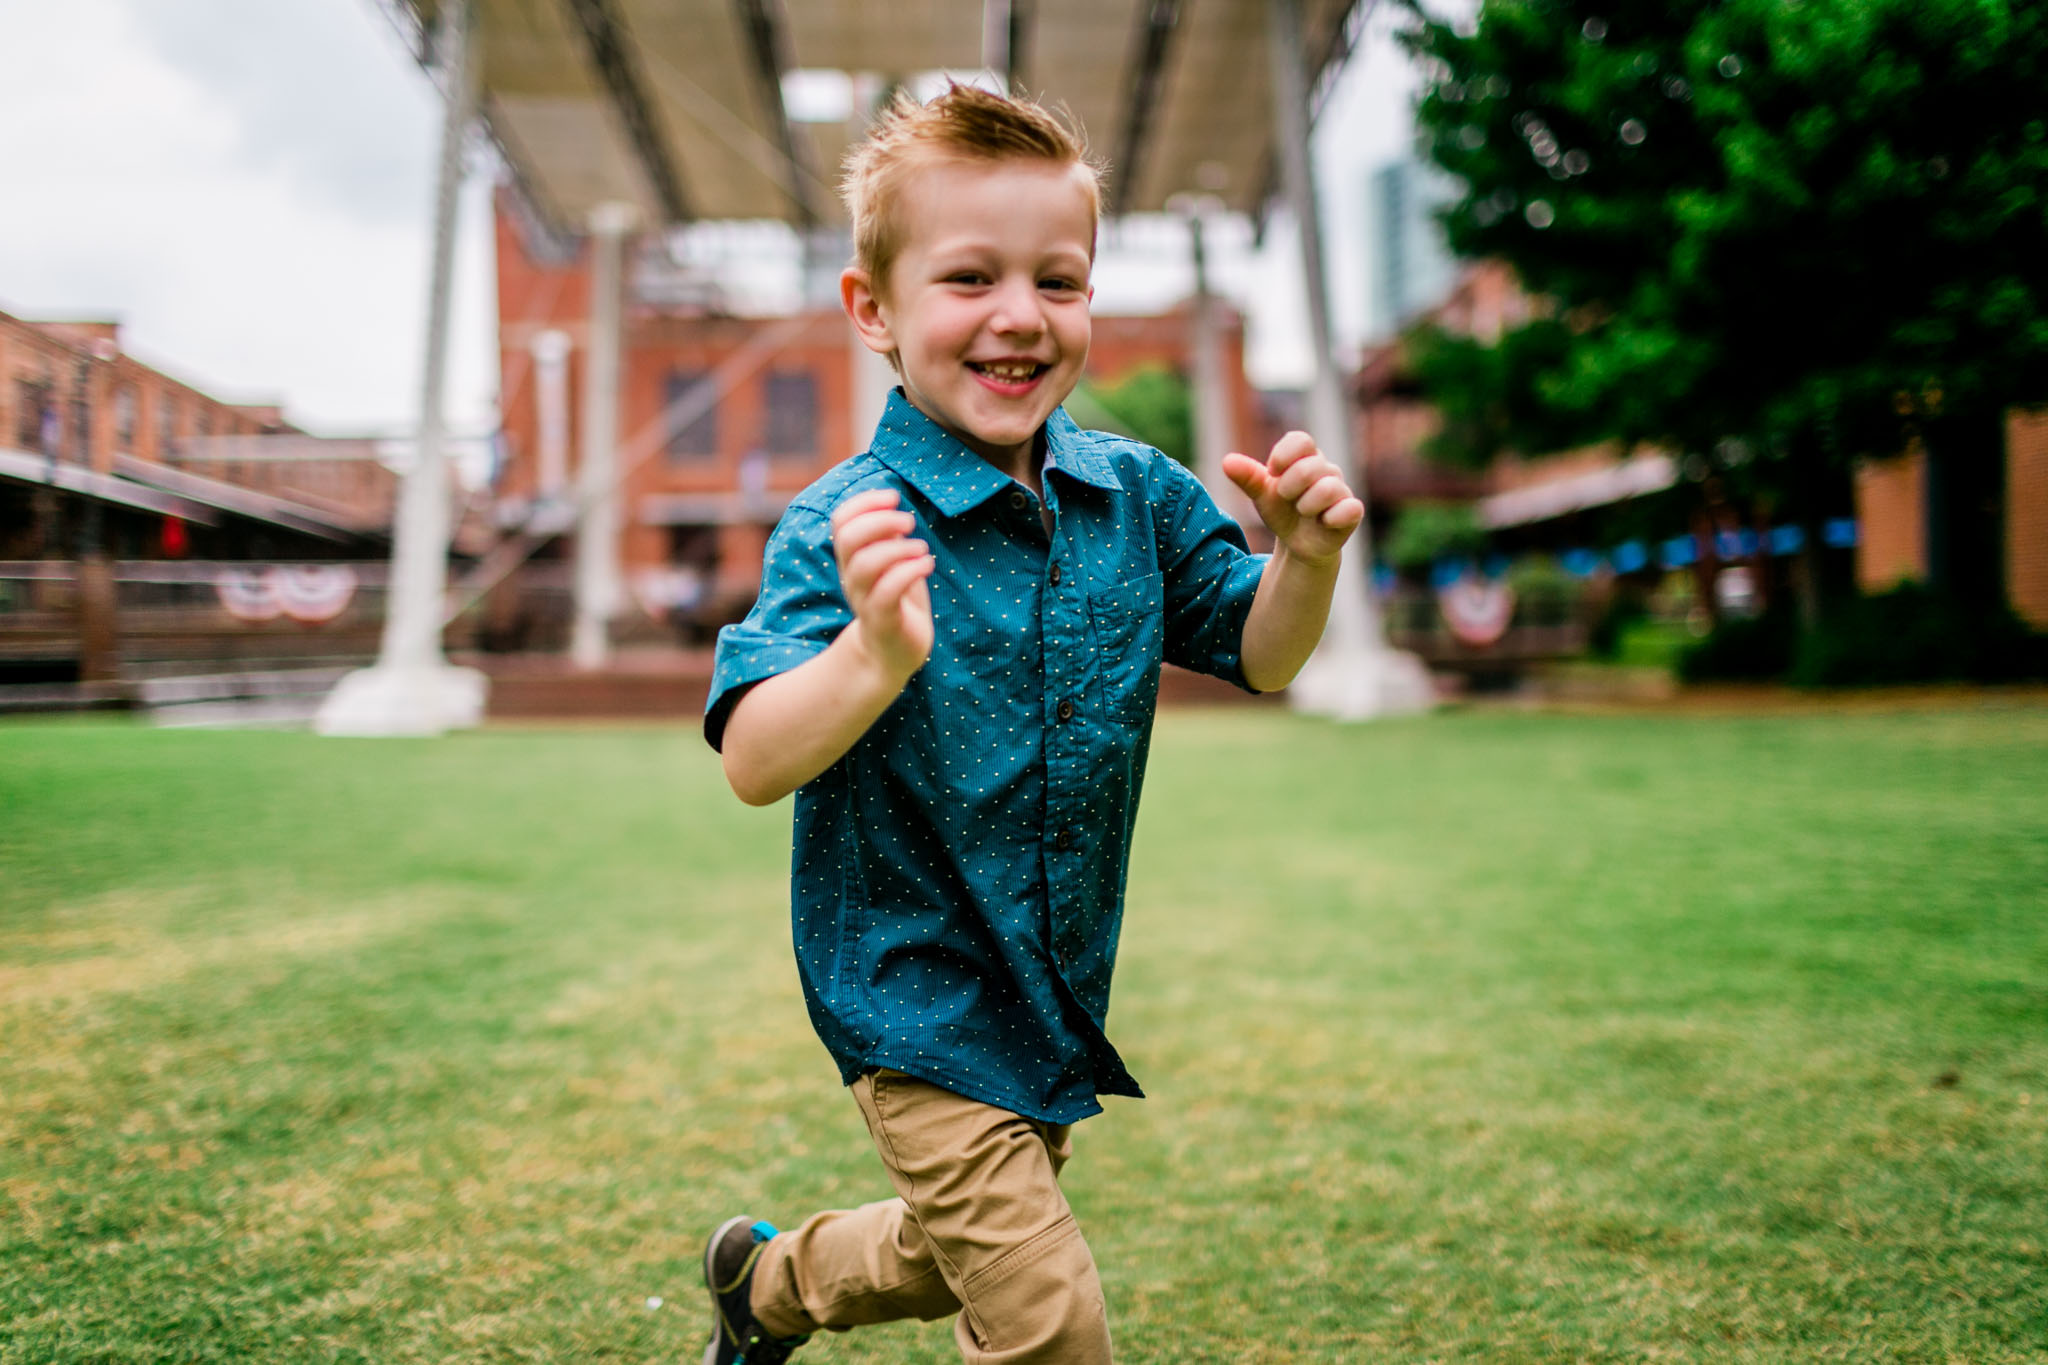 Durham Family Photographer | By G. Lin Photography | Candid photo of young boy running across grass and laughing